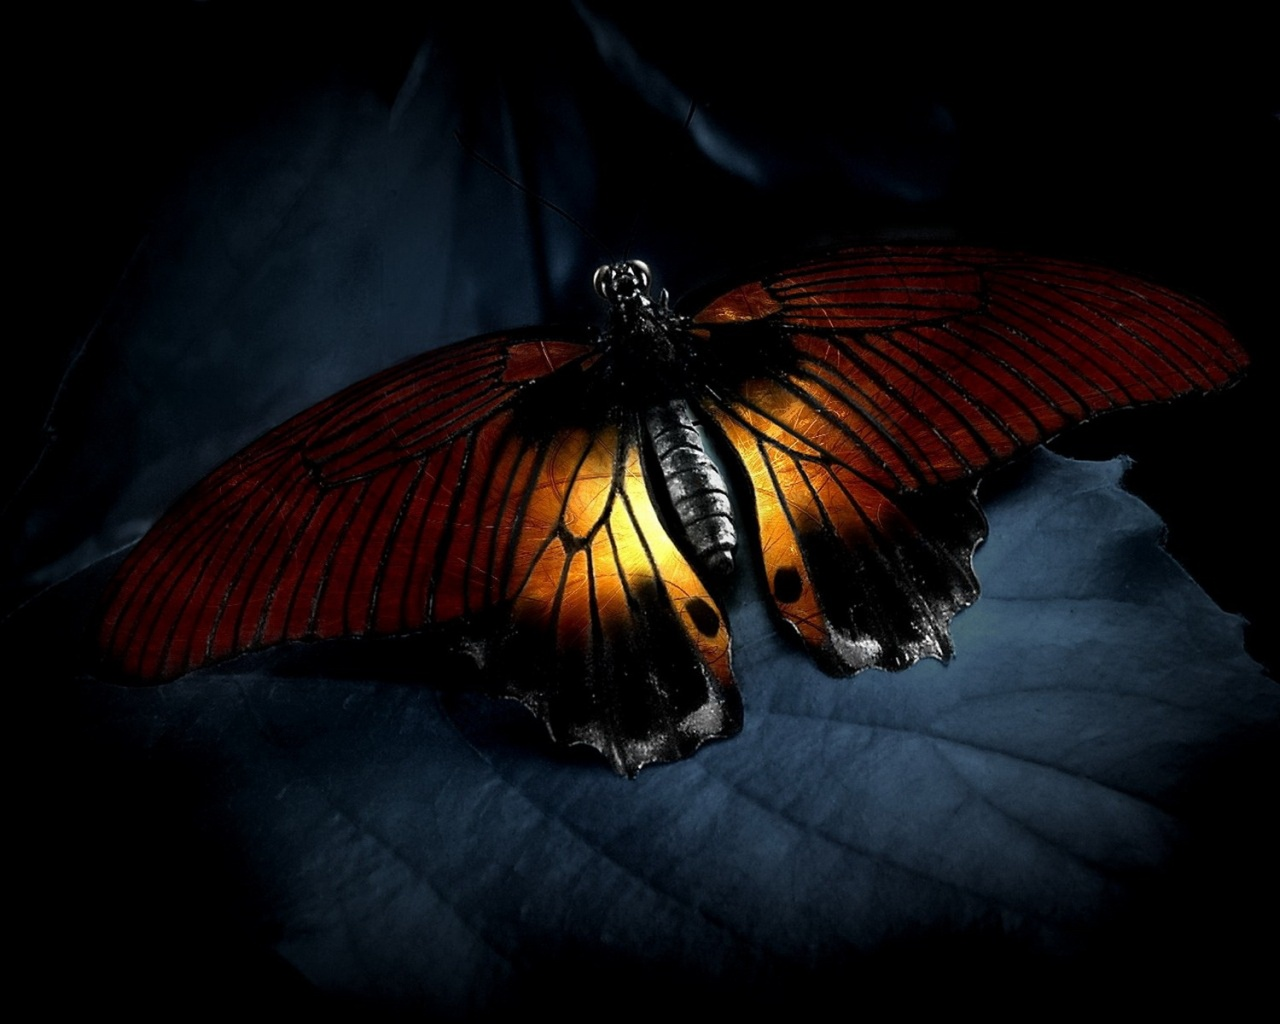 Aninimal Book: Orange butterfly wallpapers   Orange butterfly stock photos